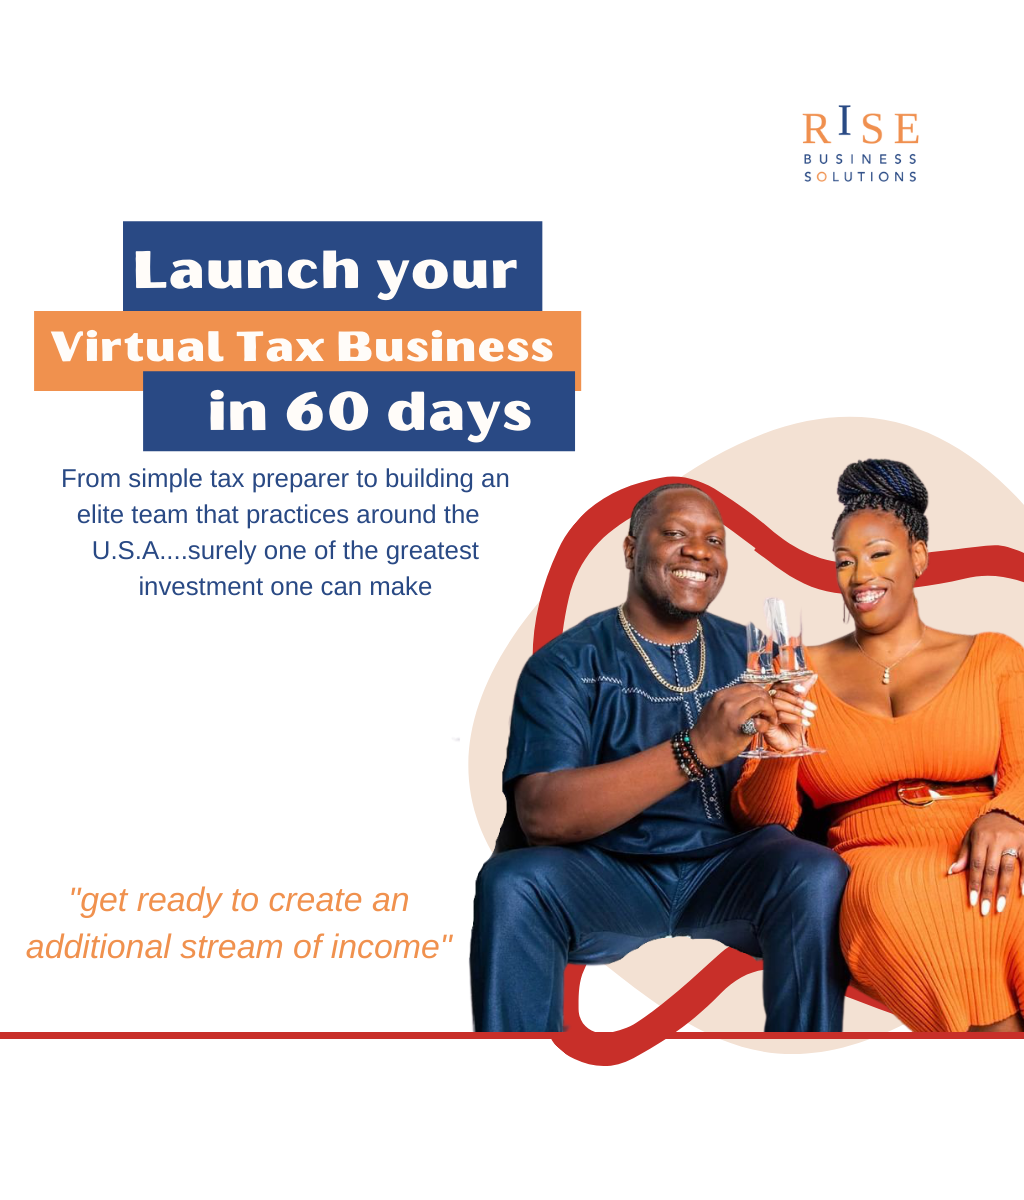 How to Start your Virtual Tax Business in 60 days